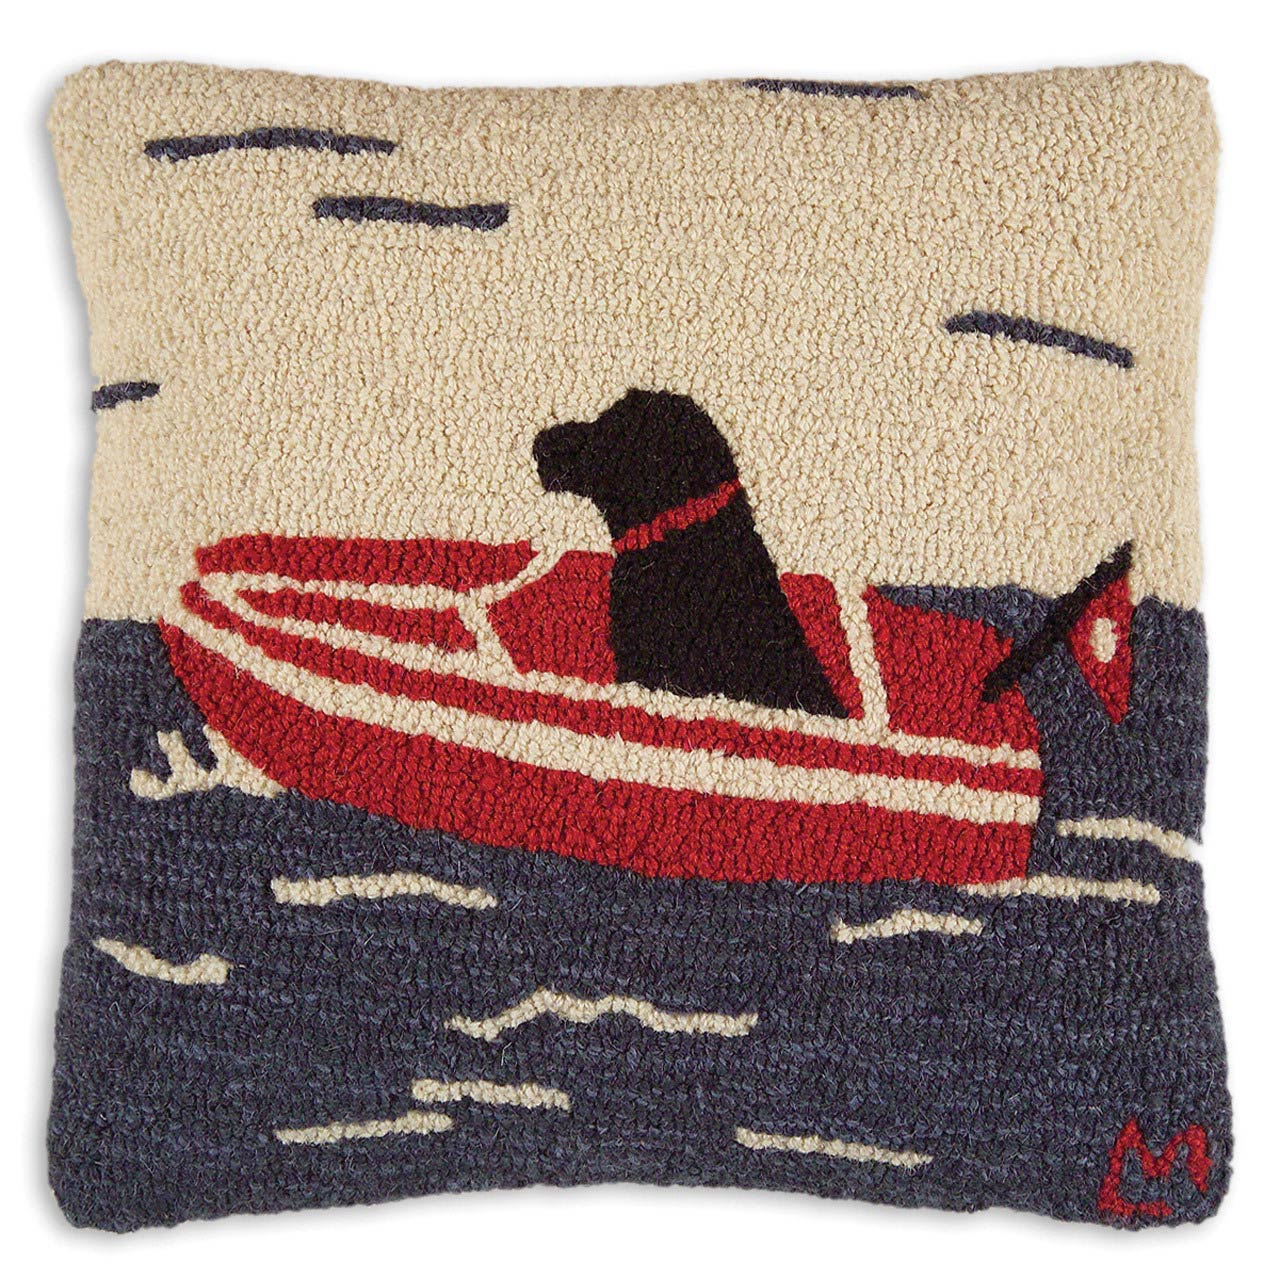 Black Forest Decor Seadog hooked wool pillow